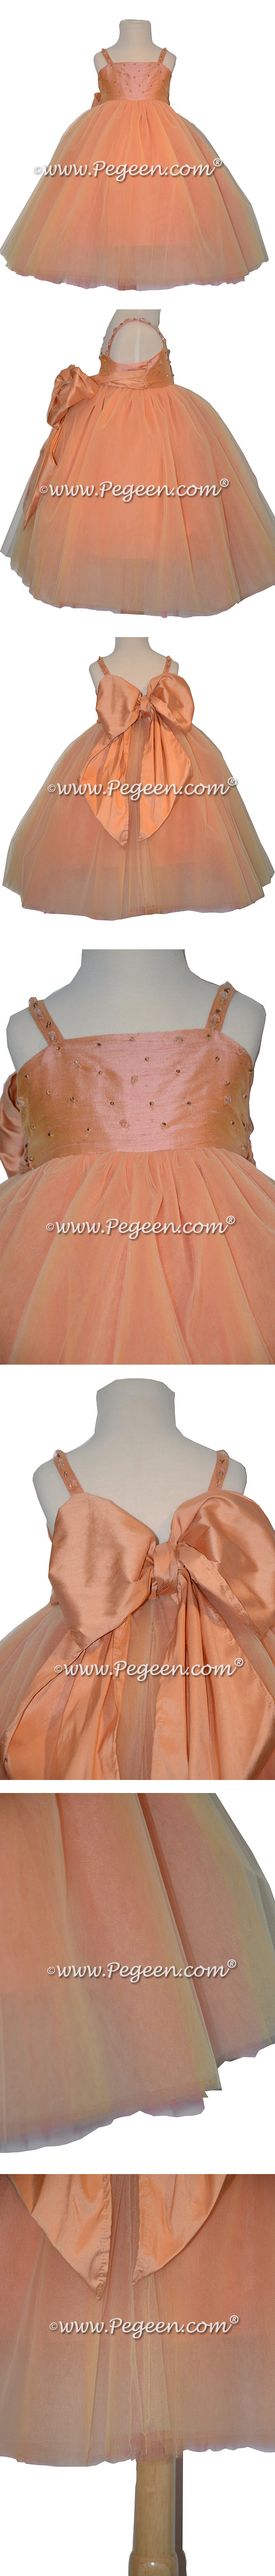 Sunset Cotillion or Couture Topaz Fairy Flower Girl Dress w/Tulle, Drop crystal tulle and crystal jewels